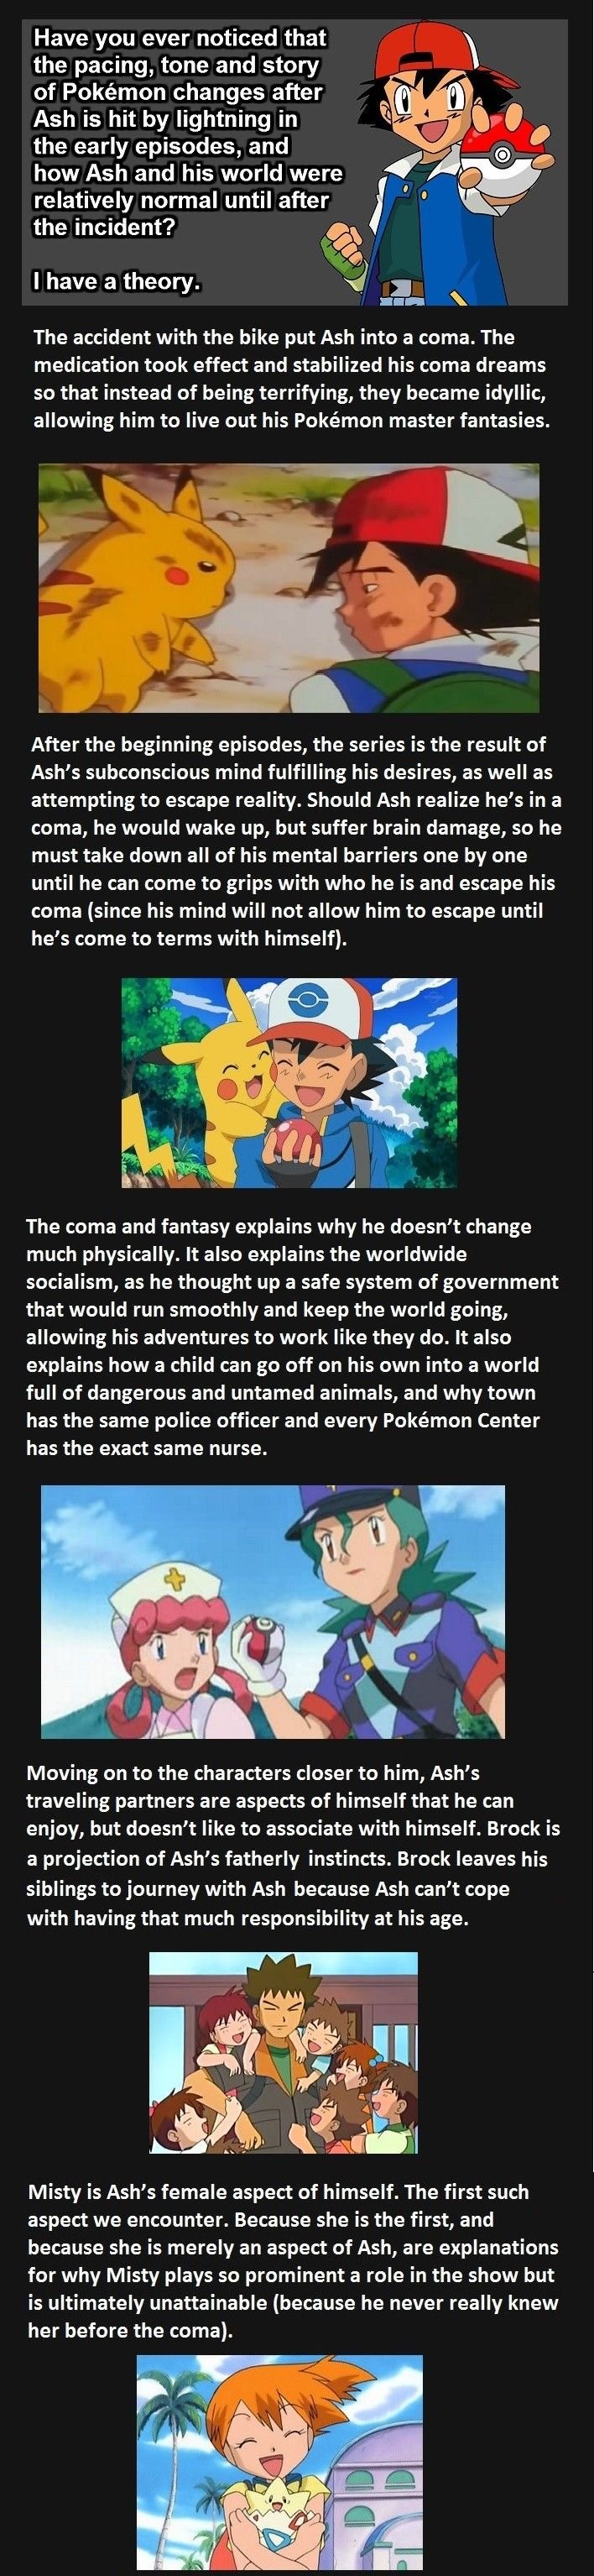 Ash's Coma Pokemon Fan Theory http://geekxgirls.com/article.php?ID=4973